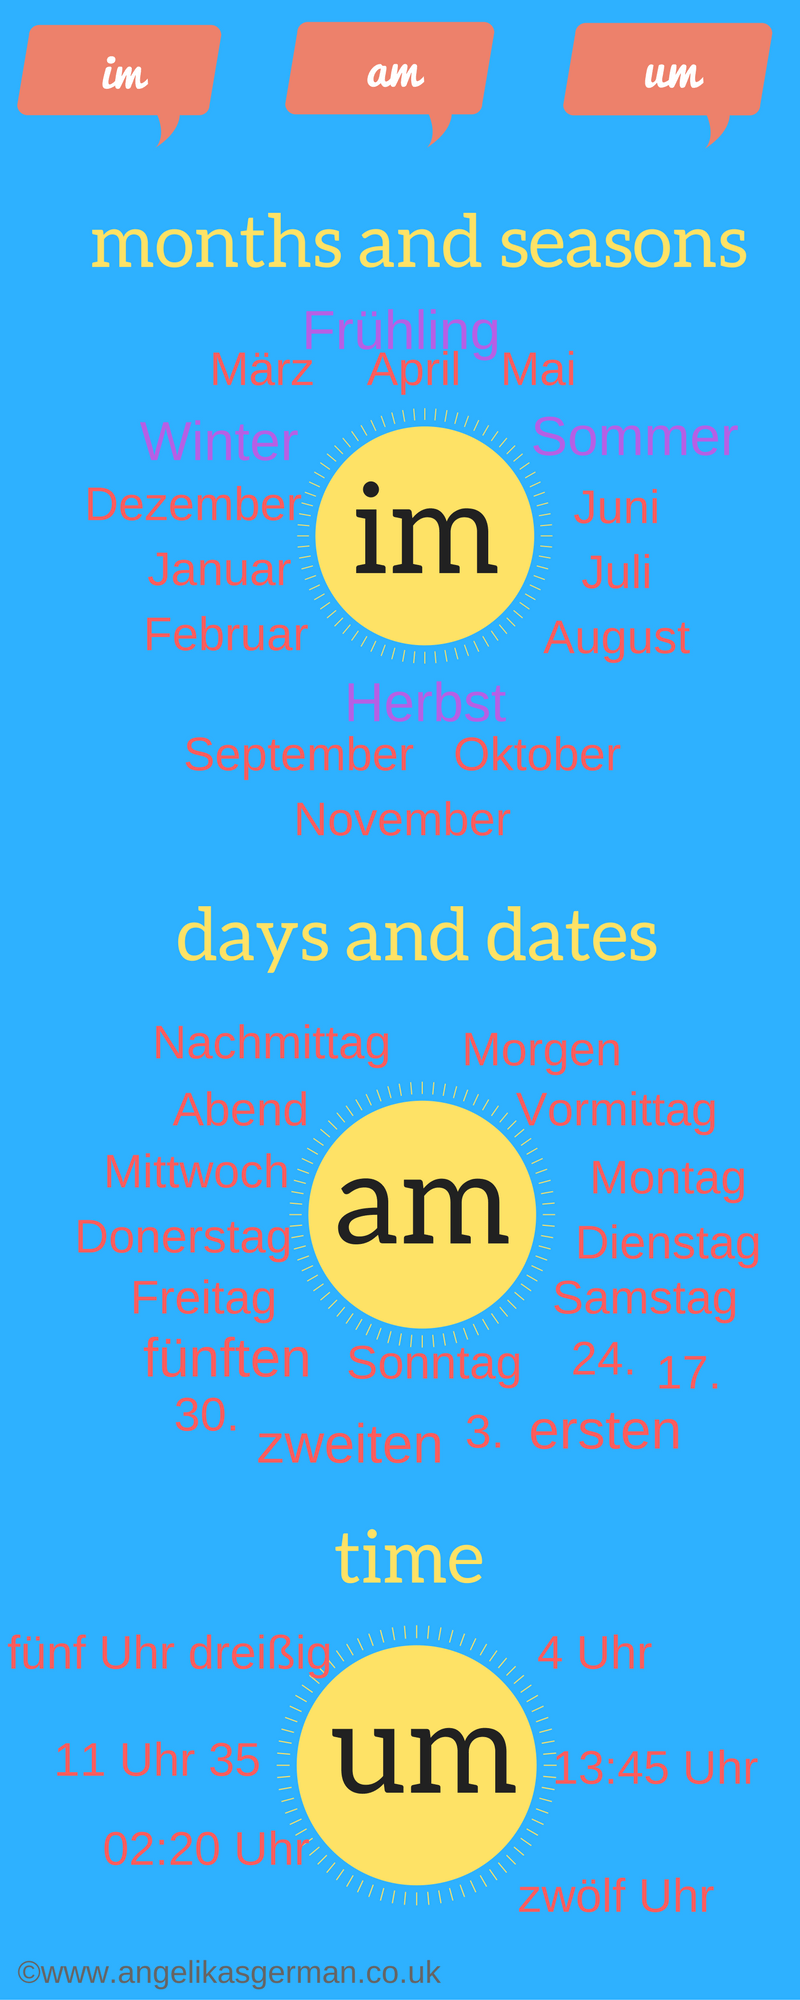 Help, I Don't Know When To Use Im, Am Or Um! Angelika's